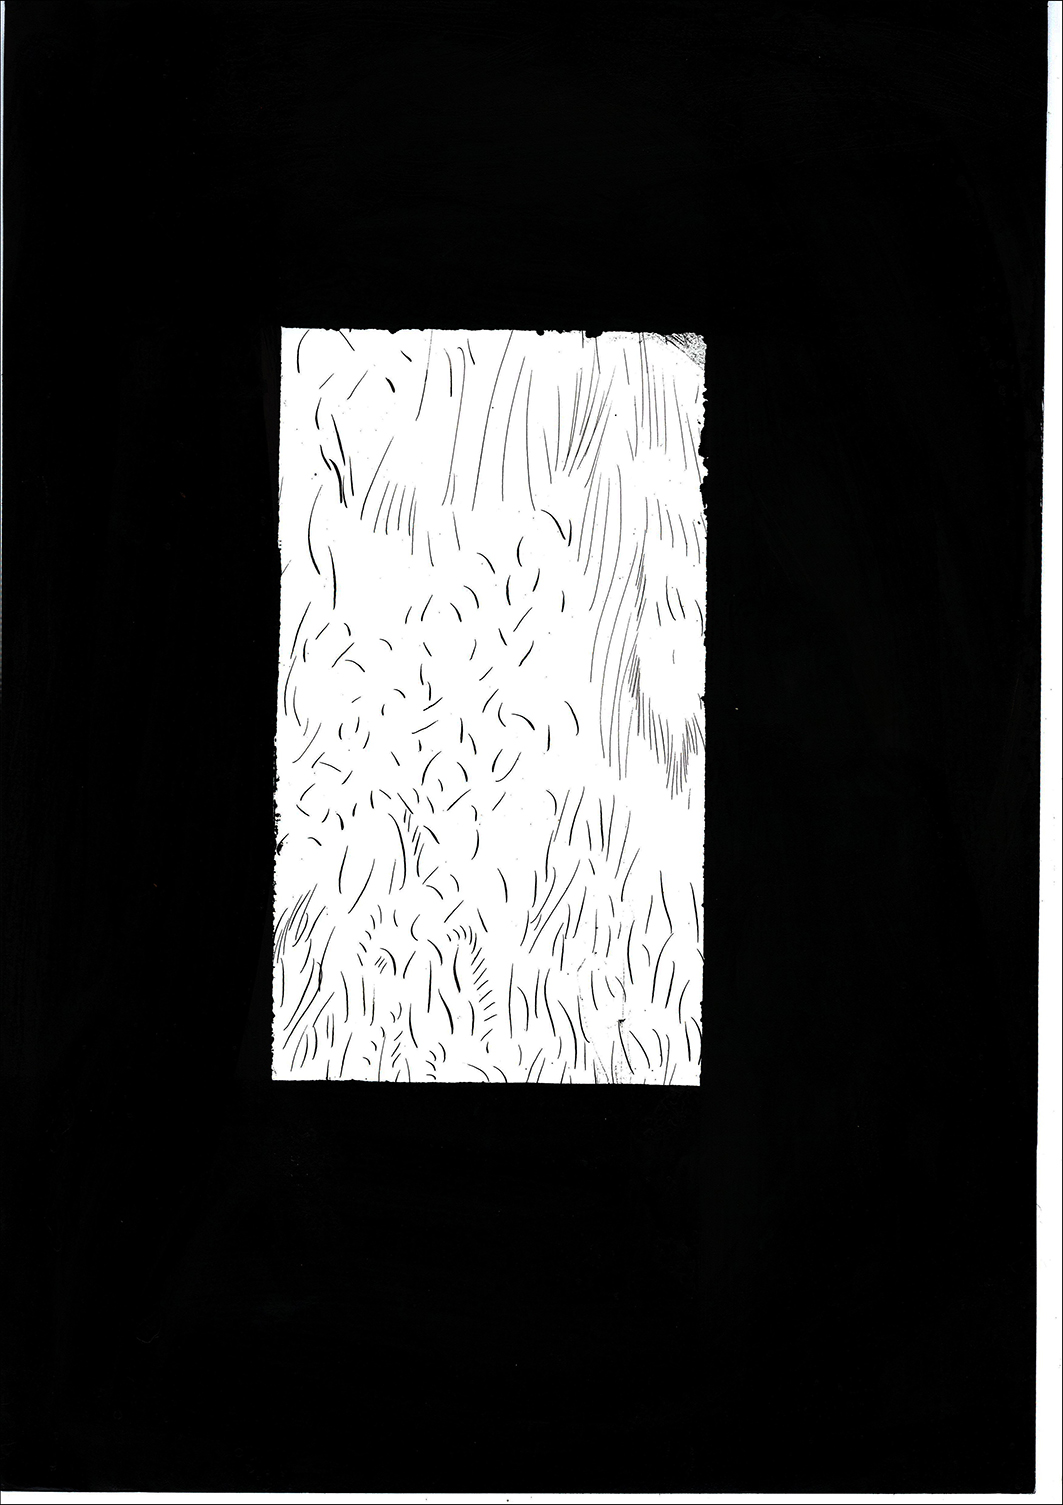 aymeric_hainaux_pages_noires (12)